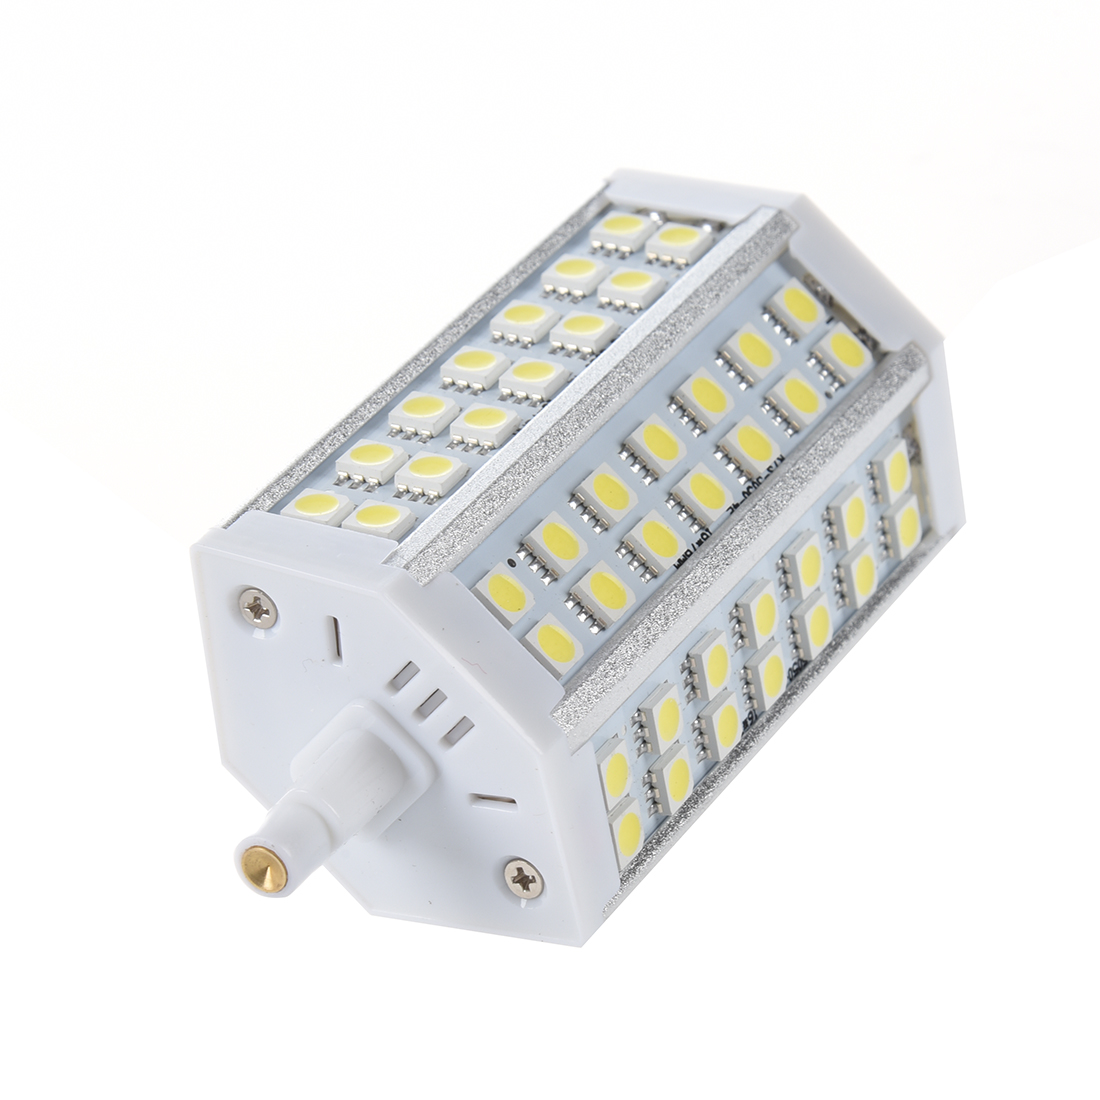 r7s j118 energy saving white 42 smd led halogen light lamp. Black Bedroom Furniture Sets. Home Design Ideas